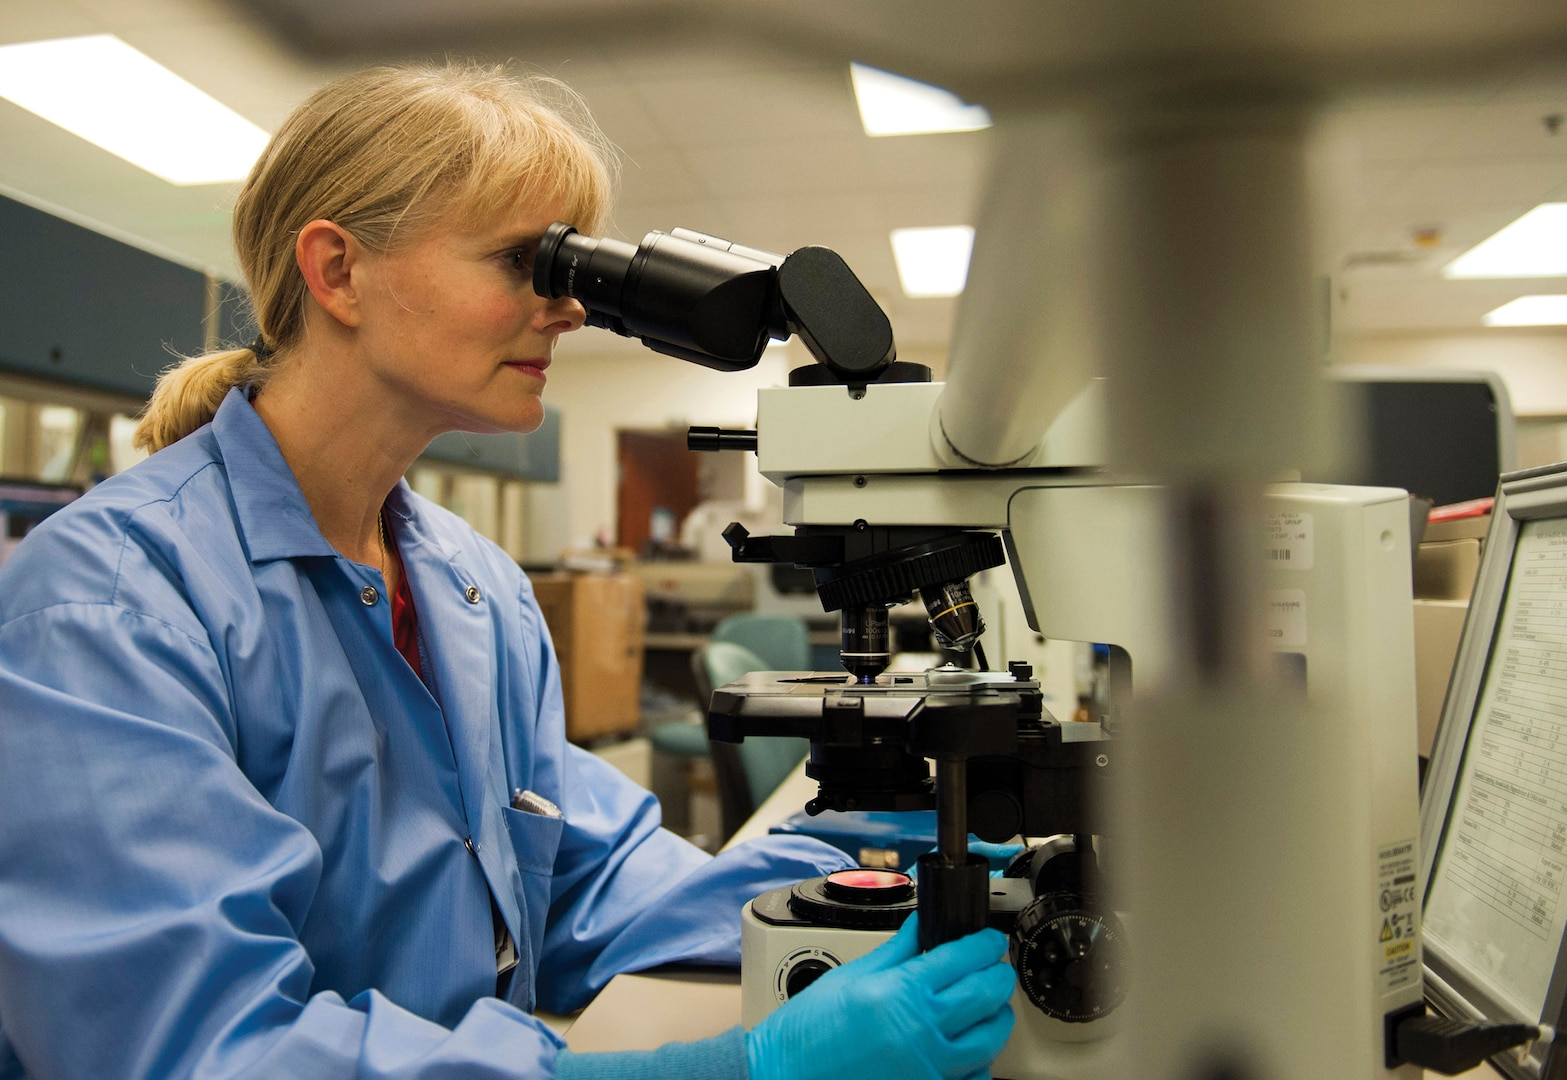 Dolli Lane, 96th Medical Group laboratory technician, reviews sample through microscope November 19, 2015, at Eglin Air Force Base, Florida, after recently discovering rare spirally twisted bacteria, known to cause tickborne relapsing fever, and cultured by Centers for Disease Control (U.S. Air Force/Ilka Cole)